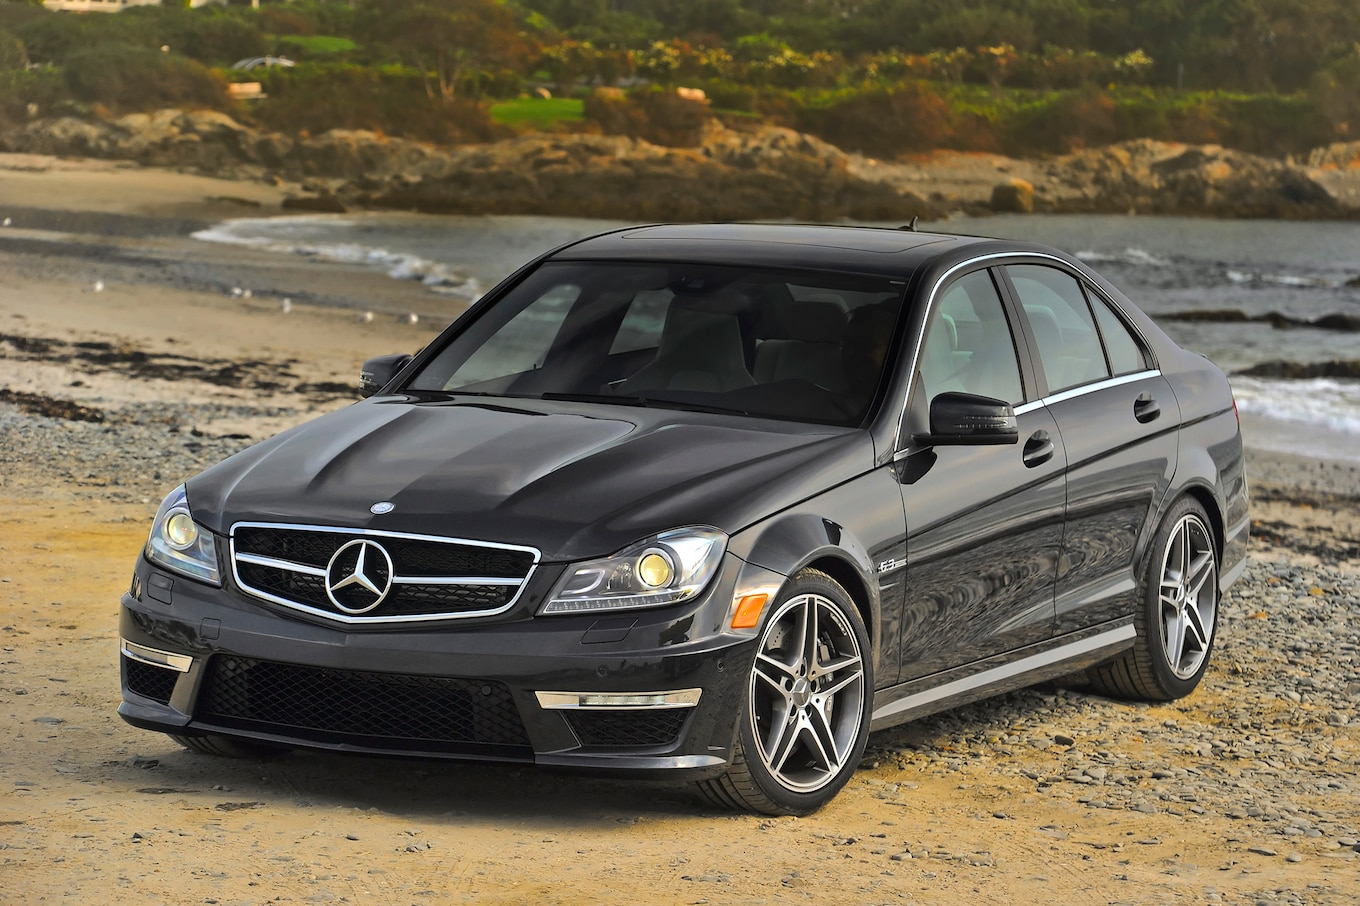 hight resolution of 2013 mercedes benz c63 amg sedan